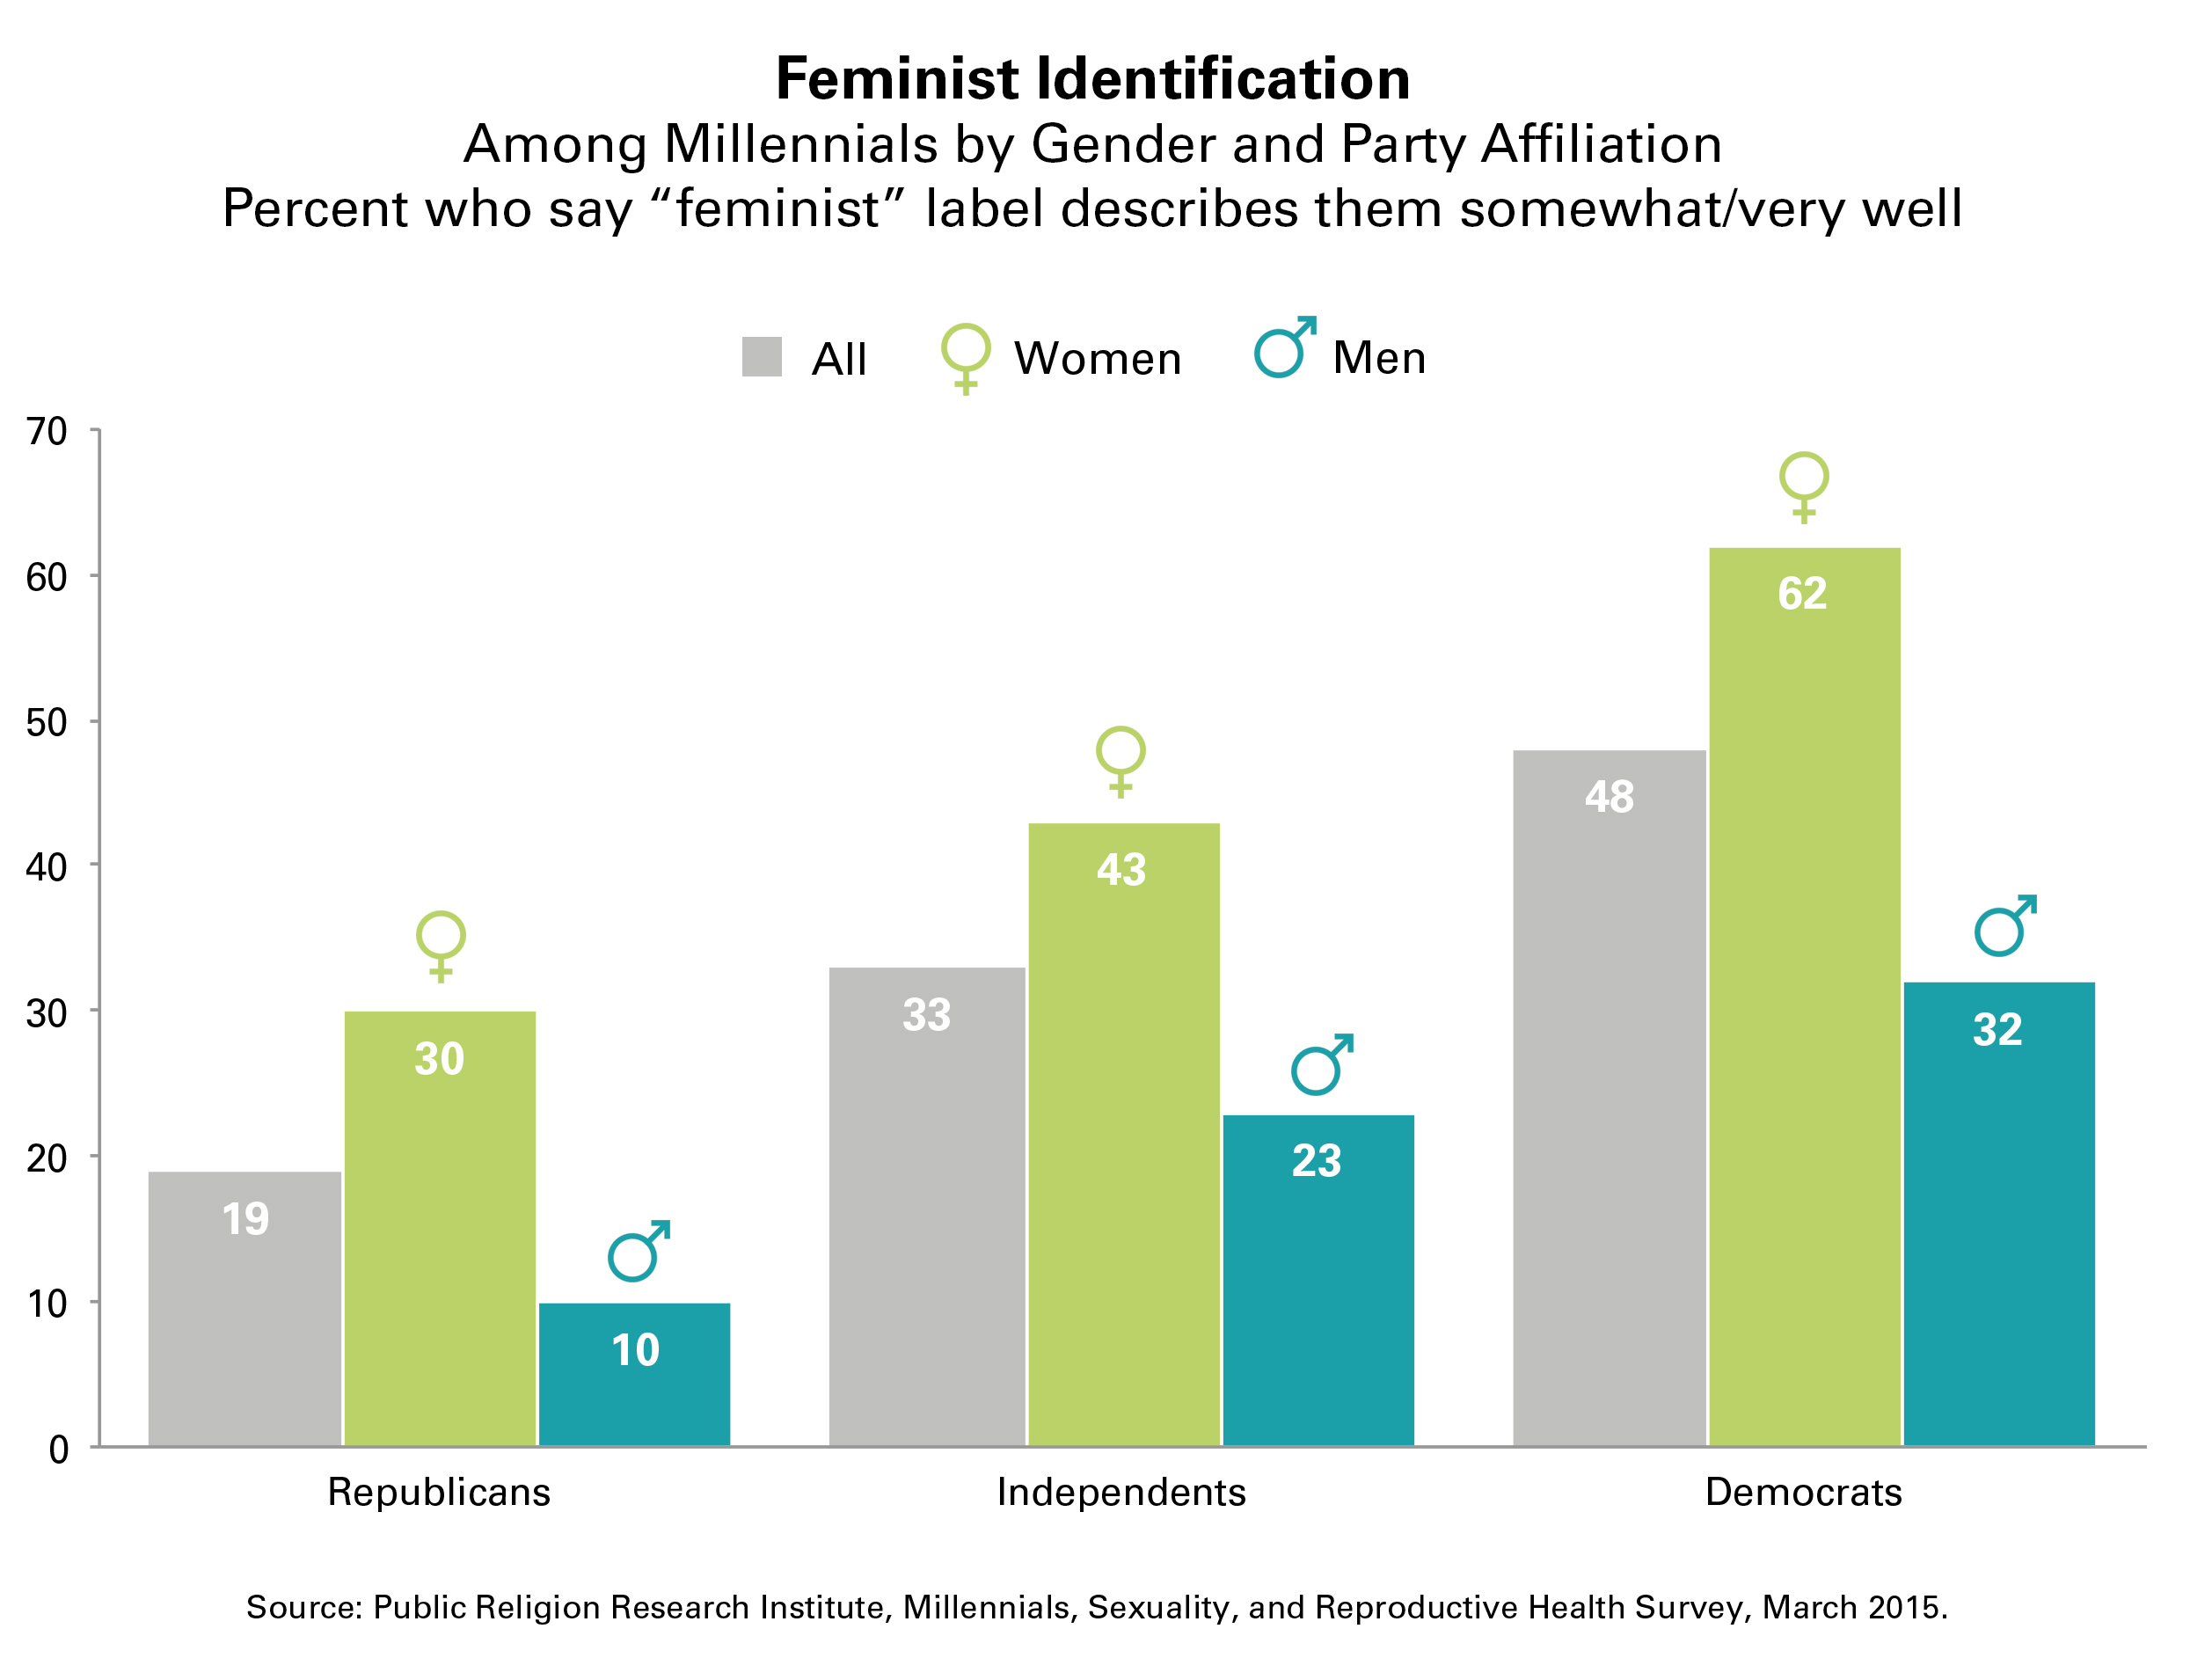 prri feminist label millennials gender political affiliation